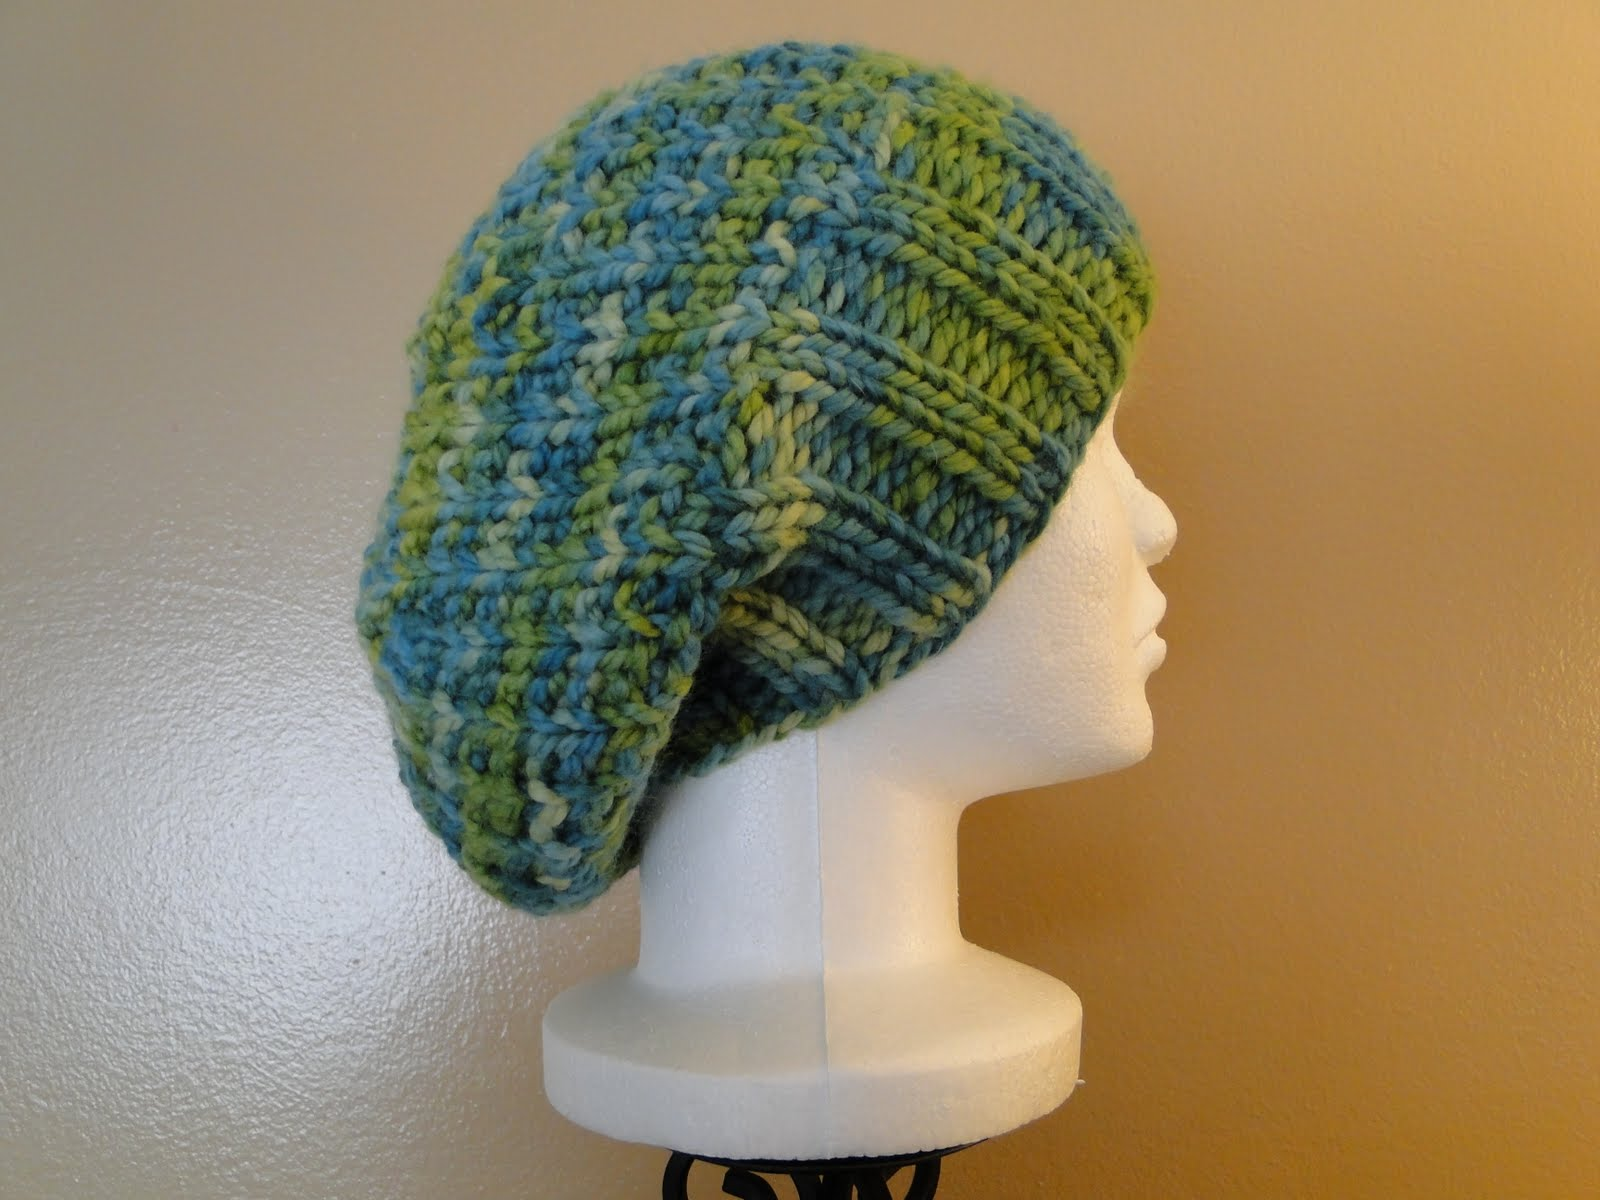 Simple Knit Hat Pattern Free : Search Results for ?Easy Knitted Slouchy Hat Pattern?   Calendar 2015